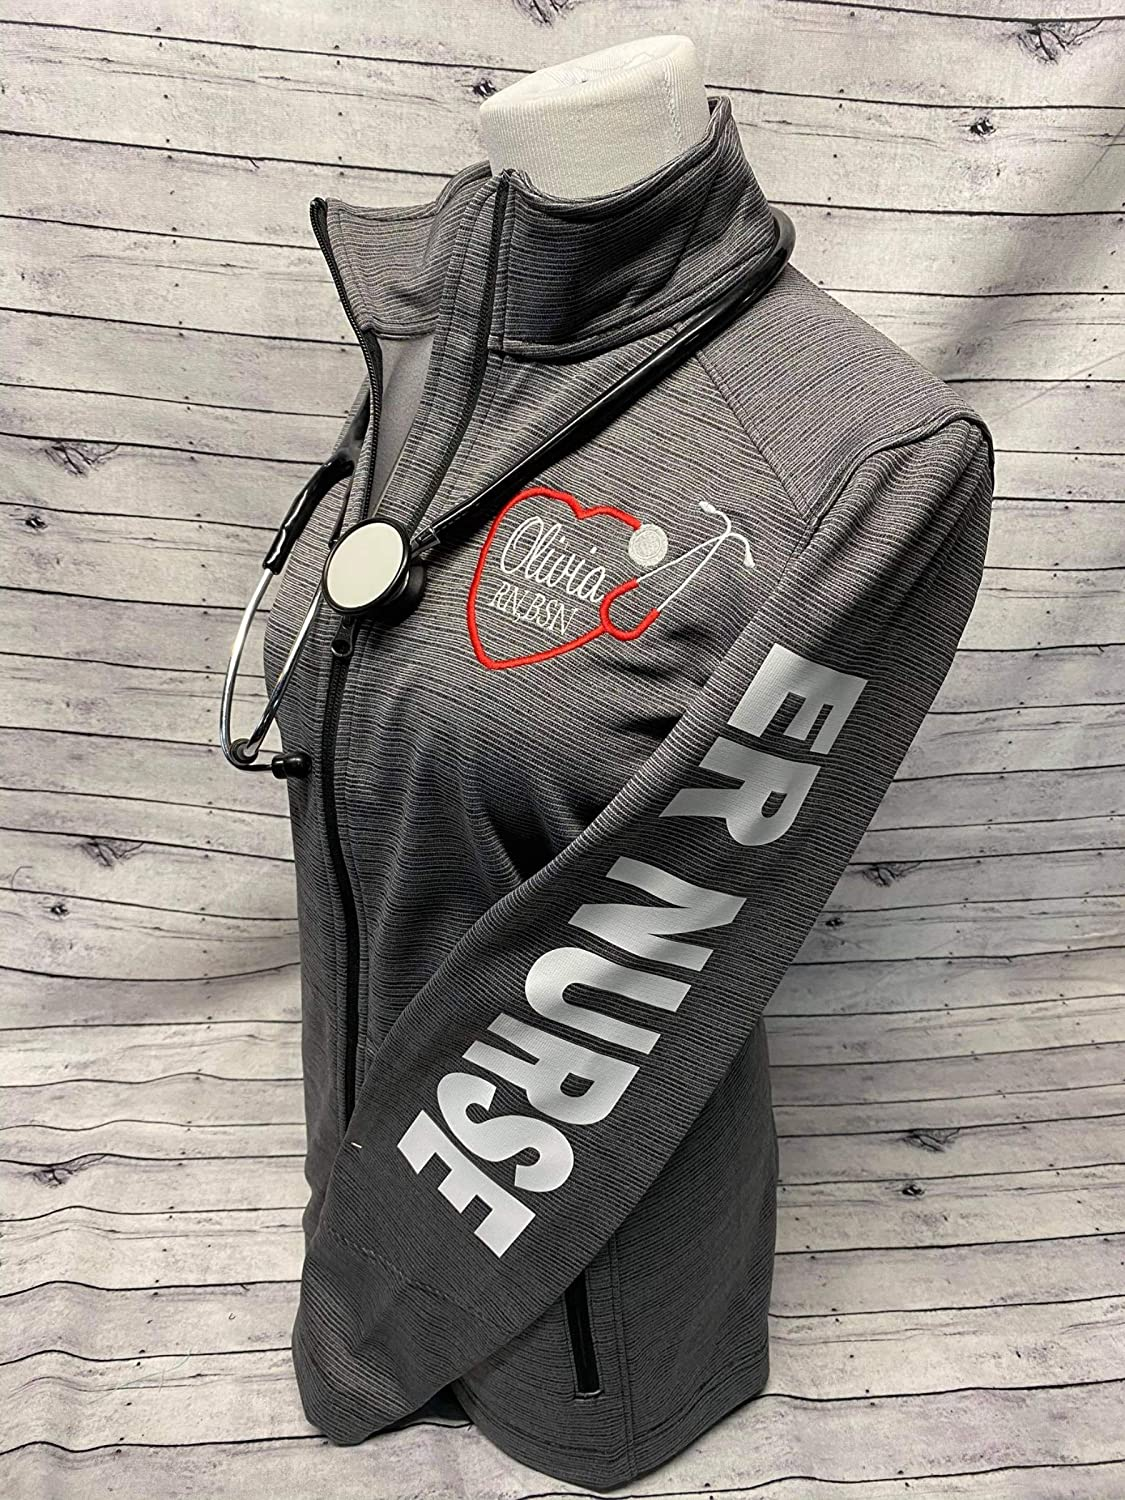 Women's ER Nurse Fleece Safety and trust Jacksonville Mall Jacket Personalized Zipper with N Full